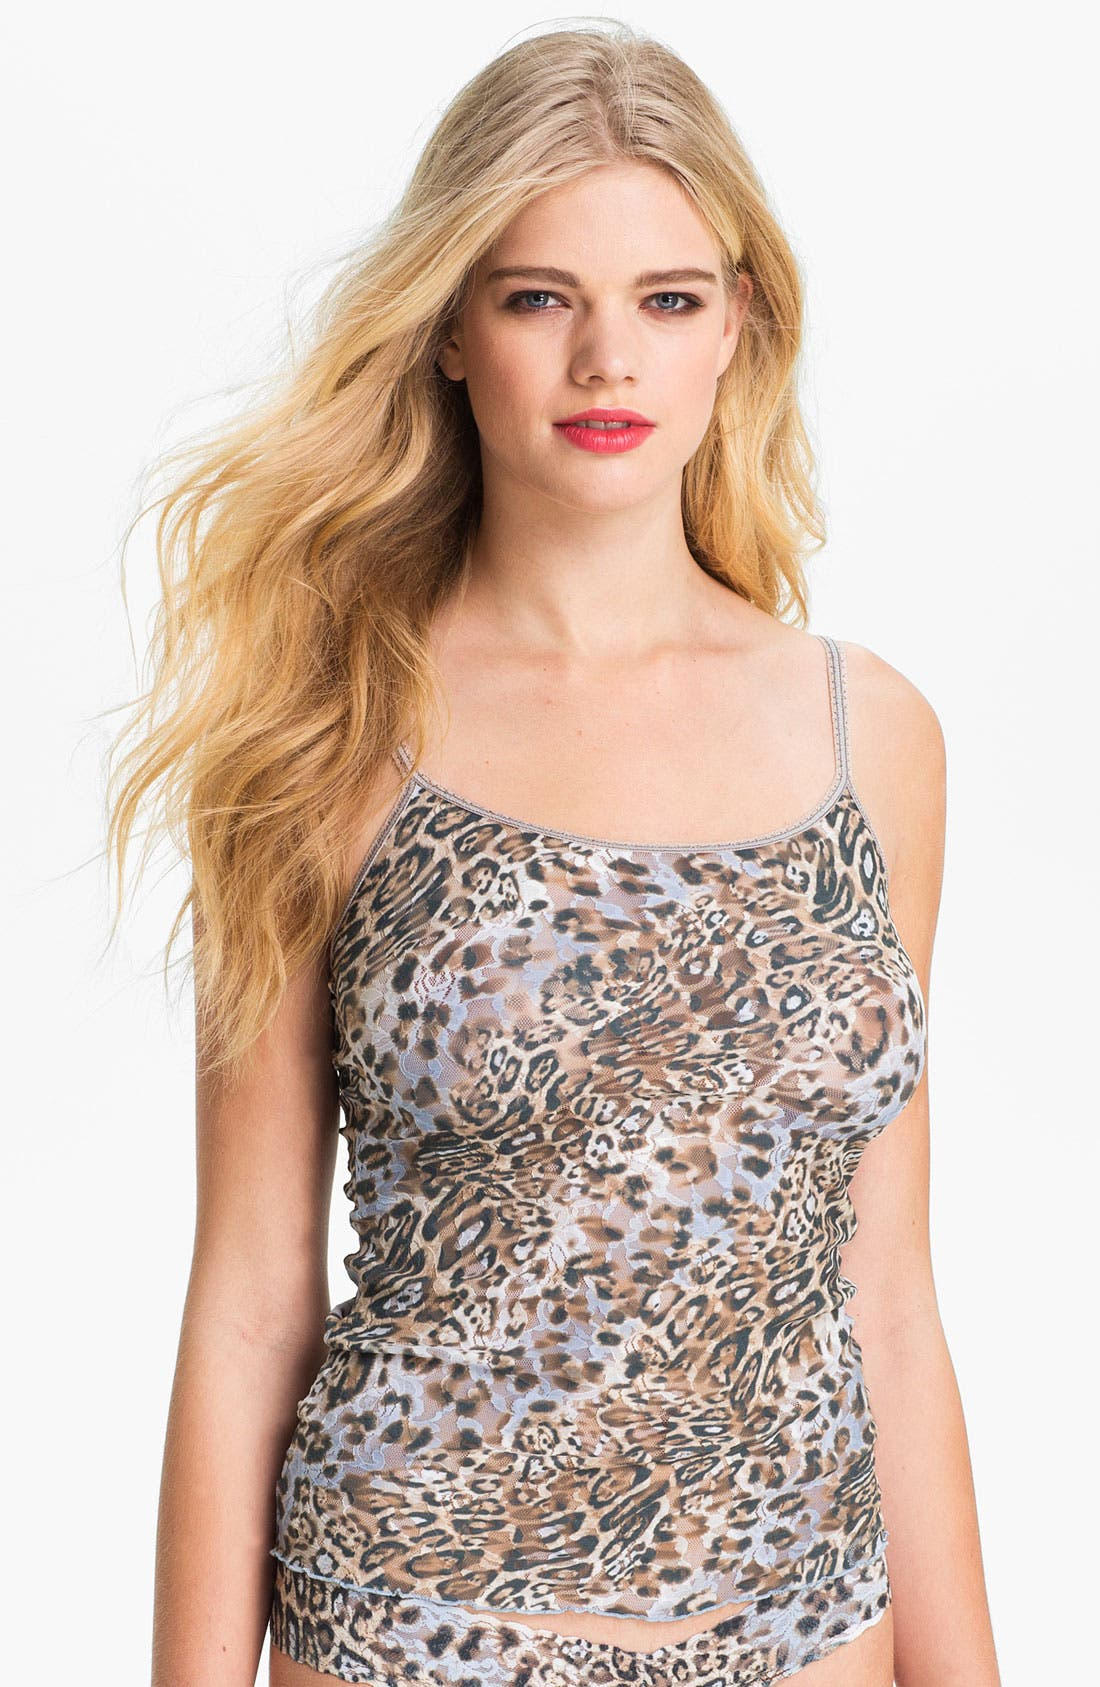 Alternate Image 1 Selected - Hanky Panky 'Ocelot' Camisole